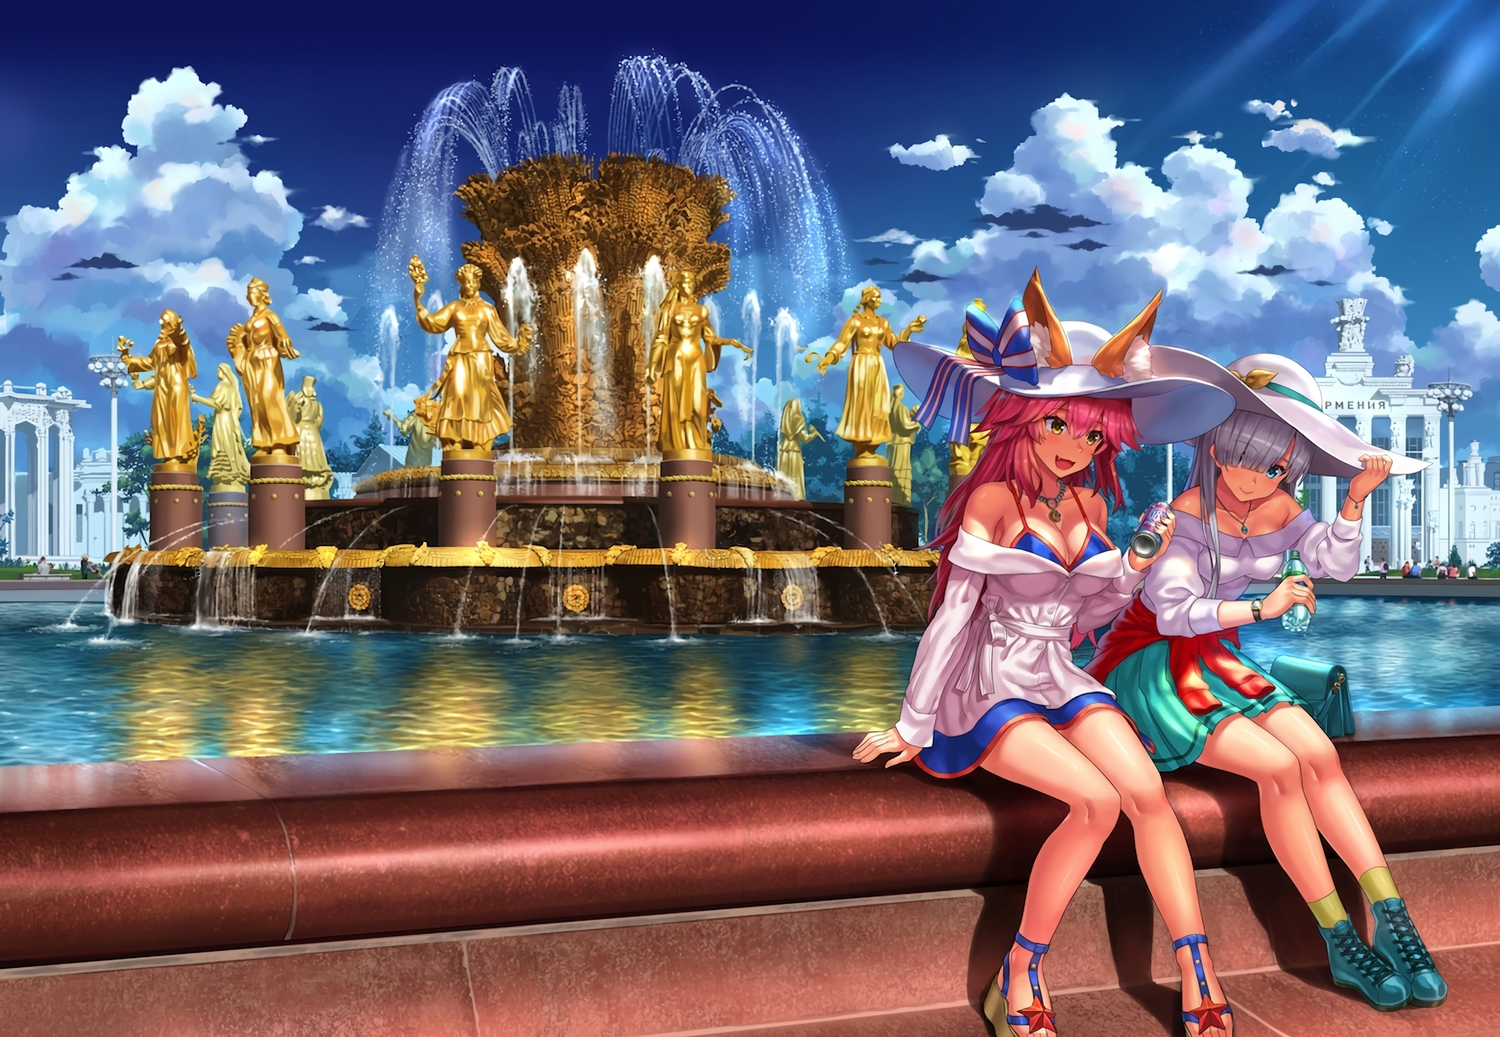 2girls anastasia_(fate/grand_order) animal_ears aqua_eyes boots breasts building cat_smile city cleavage clouds dress drink fang fate/grand_order fate_(series) foxgirl gray_hair hat long_hair necklace npcpepper pink_hair scenic skirt sky socks summer tamamo_no_mae_(fate) water wristwear yellow_eyes